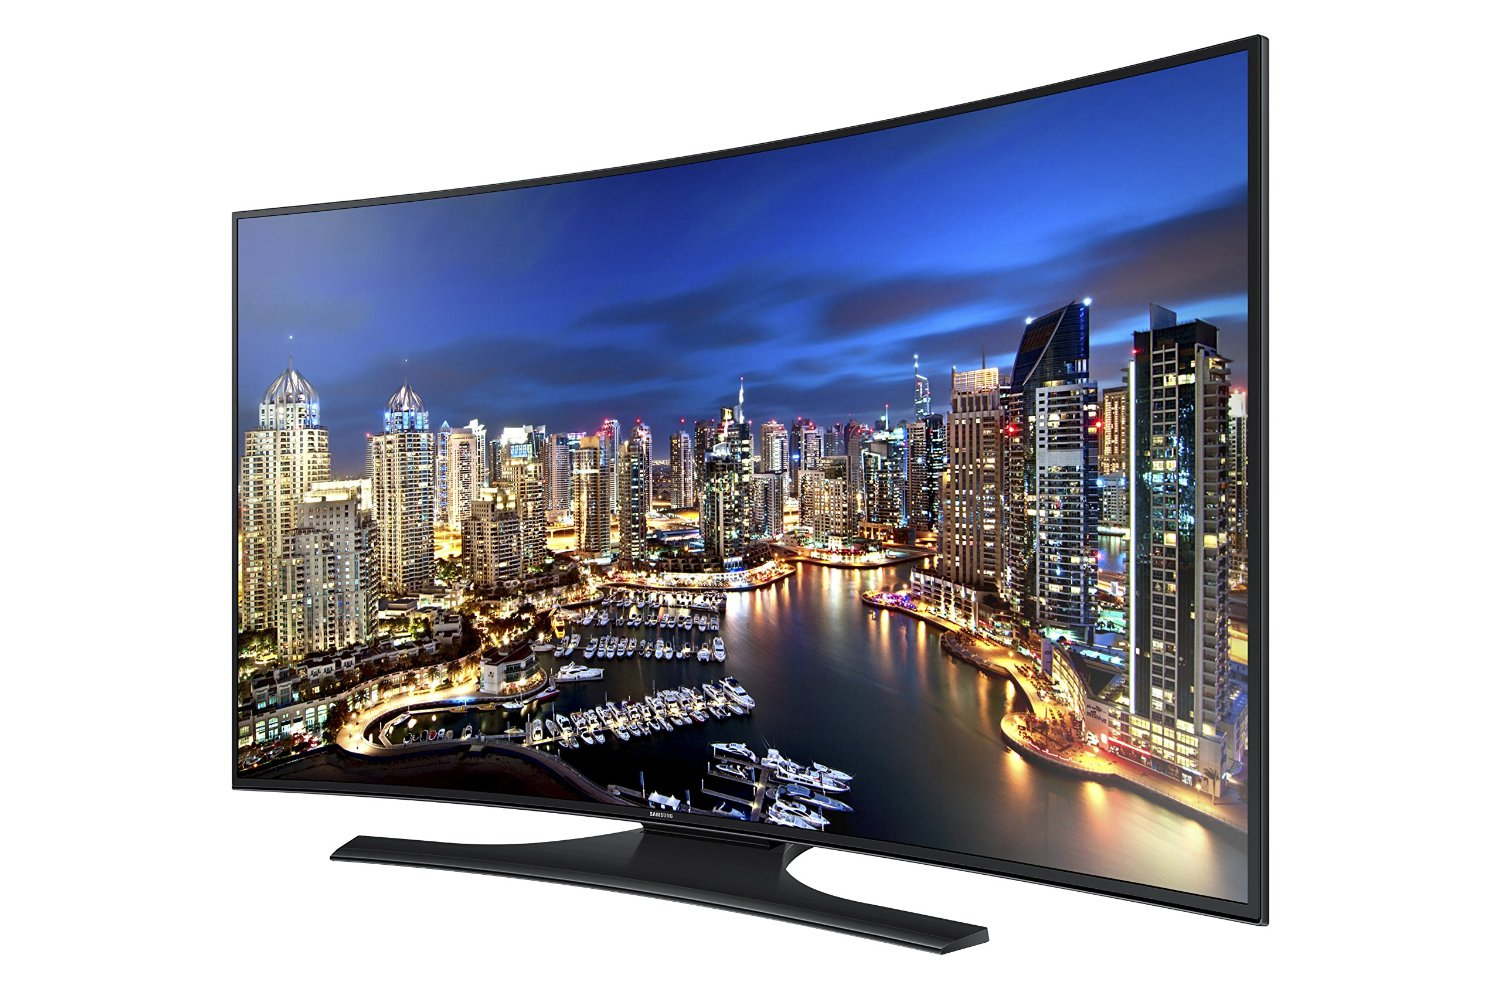 Samsung 55 Inch Curved Led Tv Review